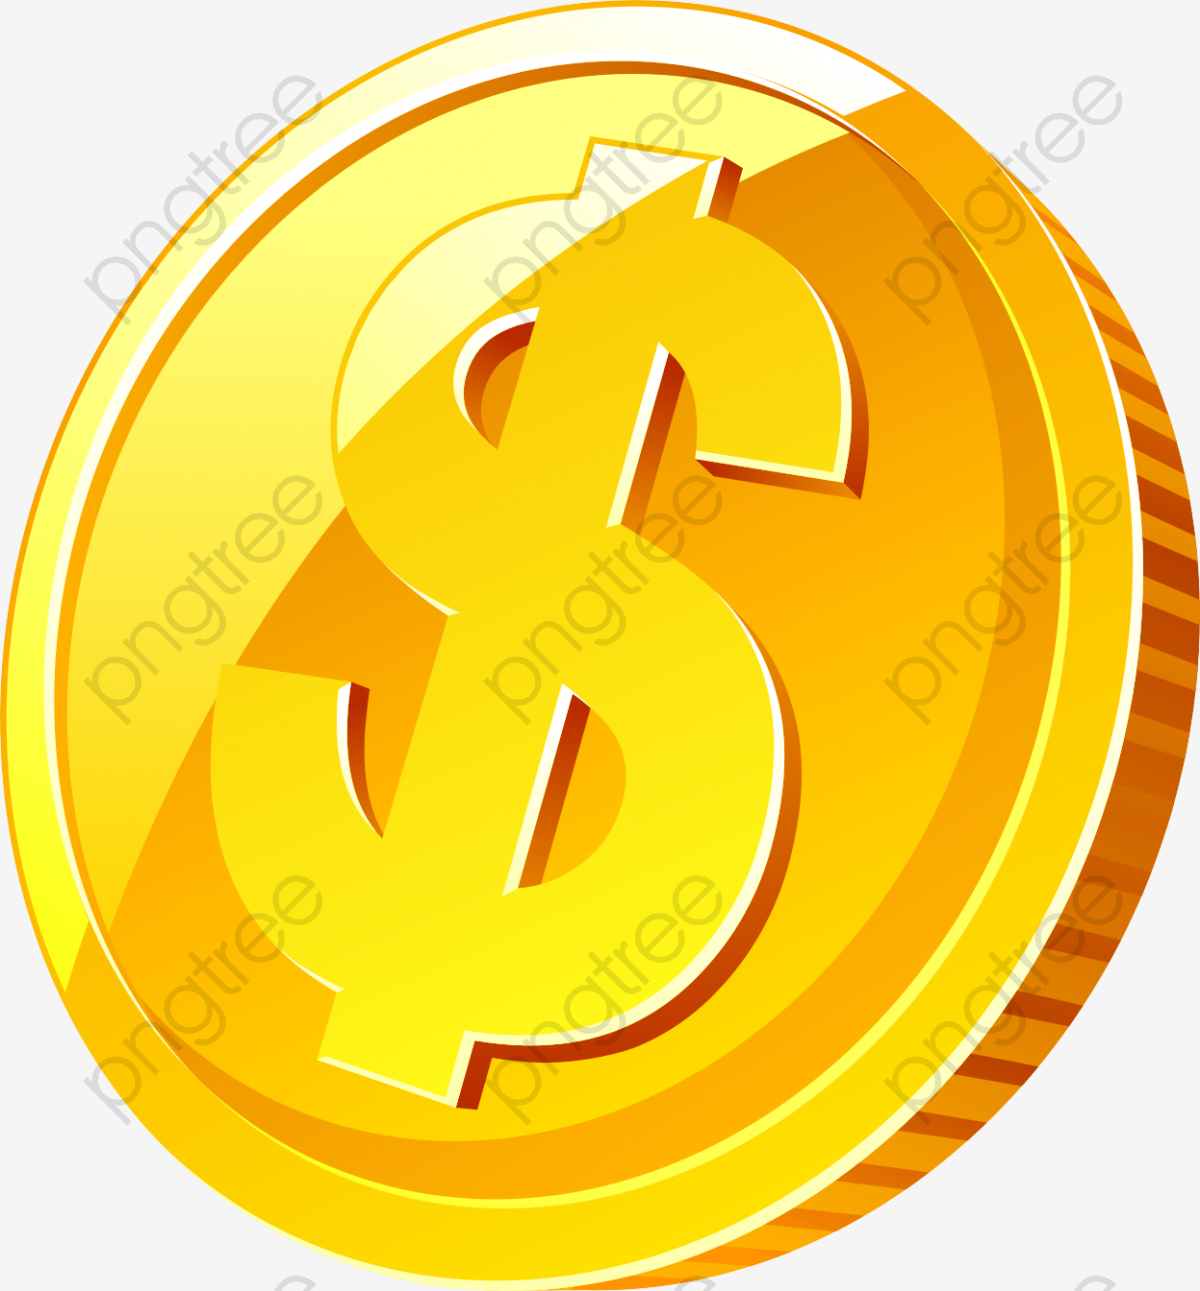 Coin, Coin Clipart, Money PNG Transparent Clipart Image and PSD File.